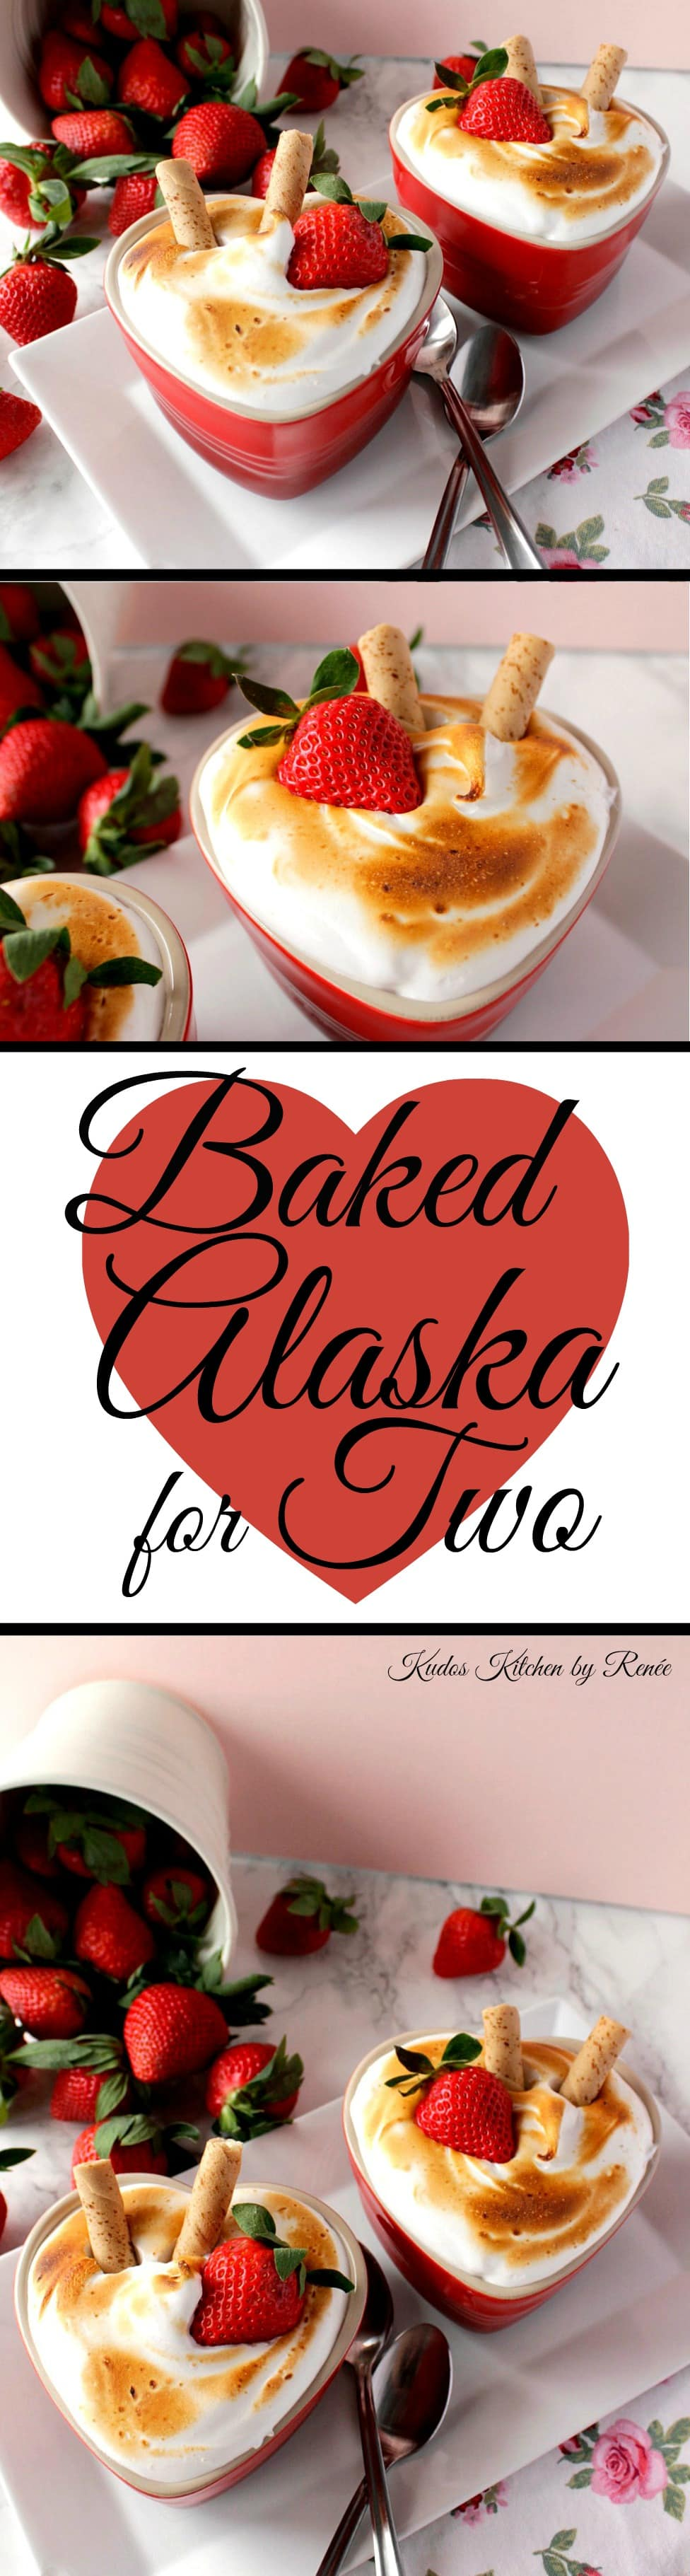 Baked Alaska for two long collage title image